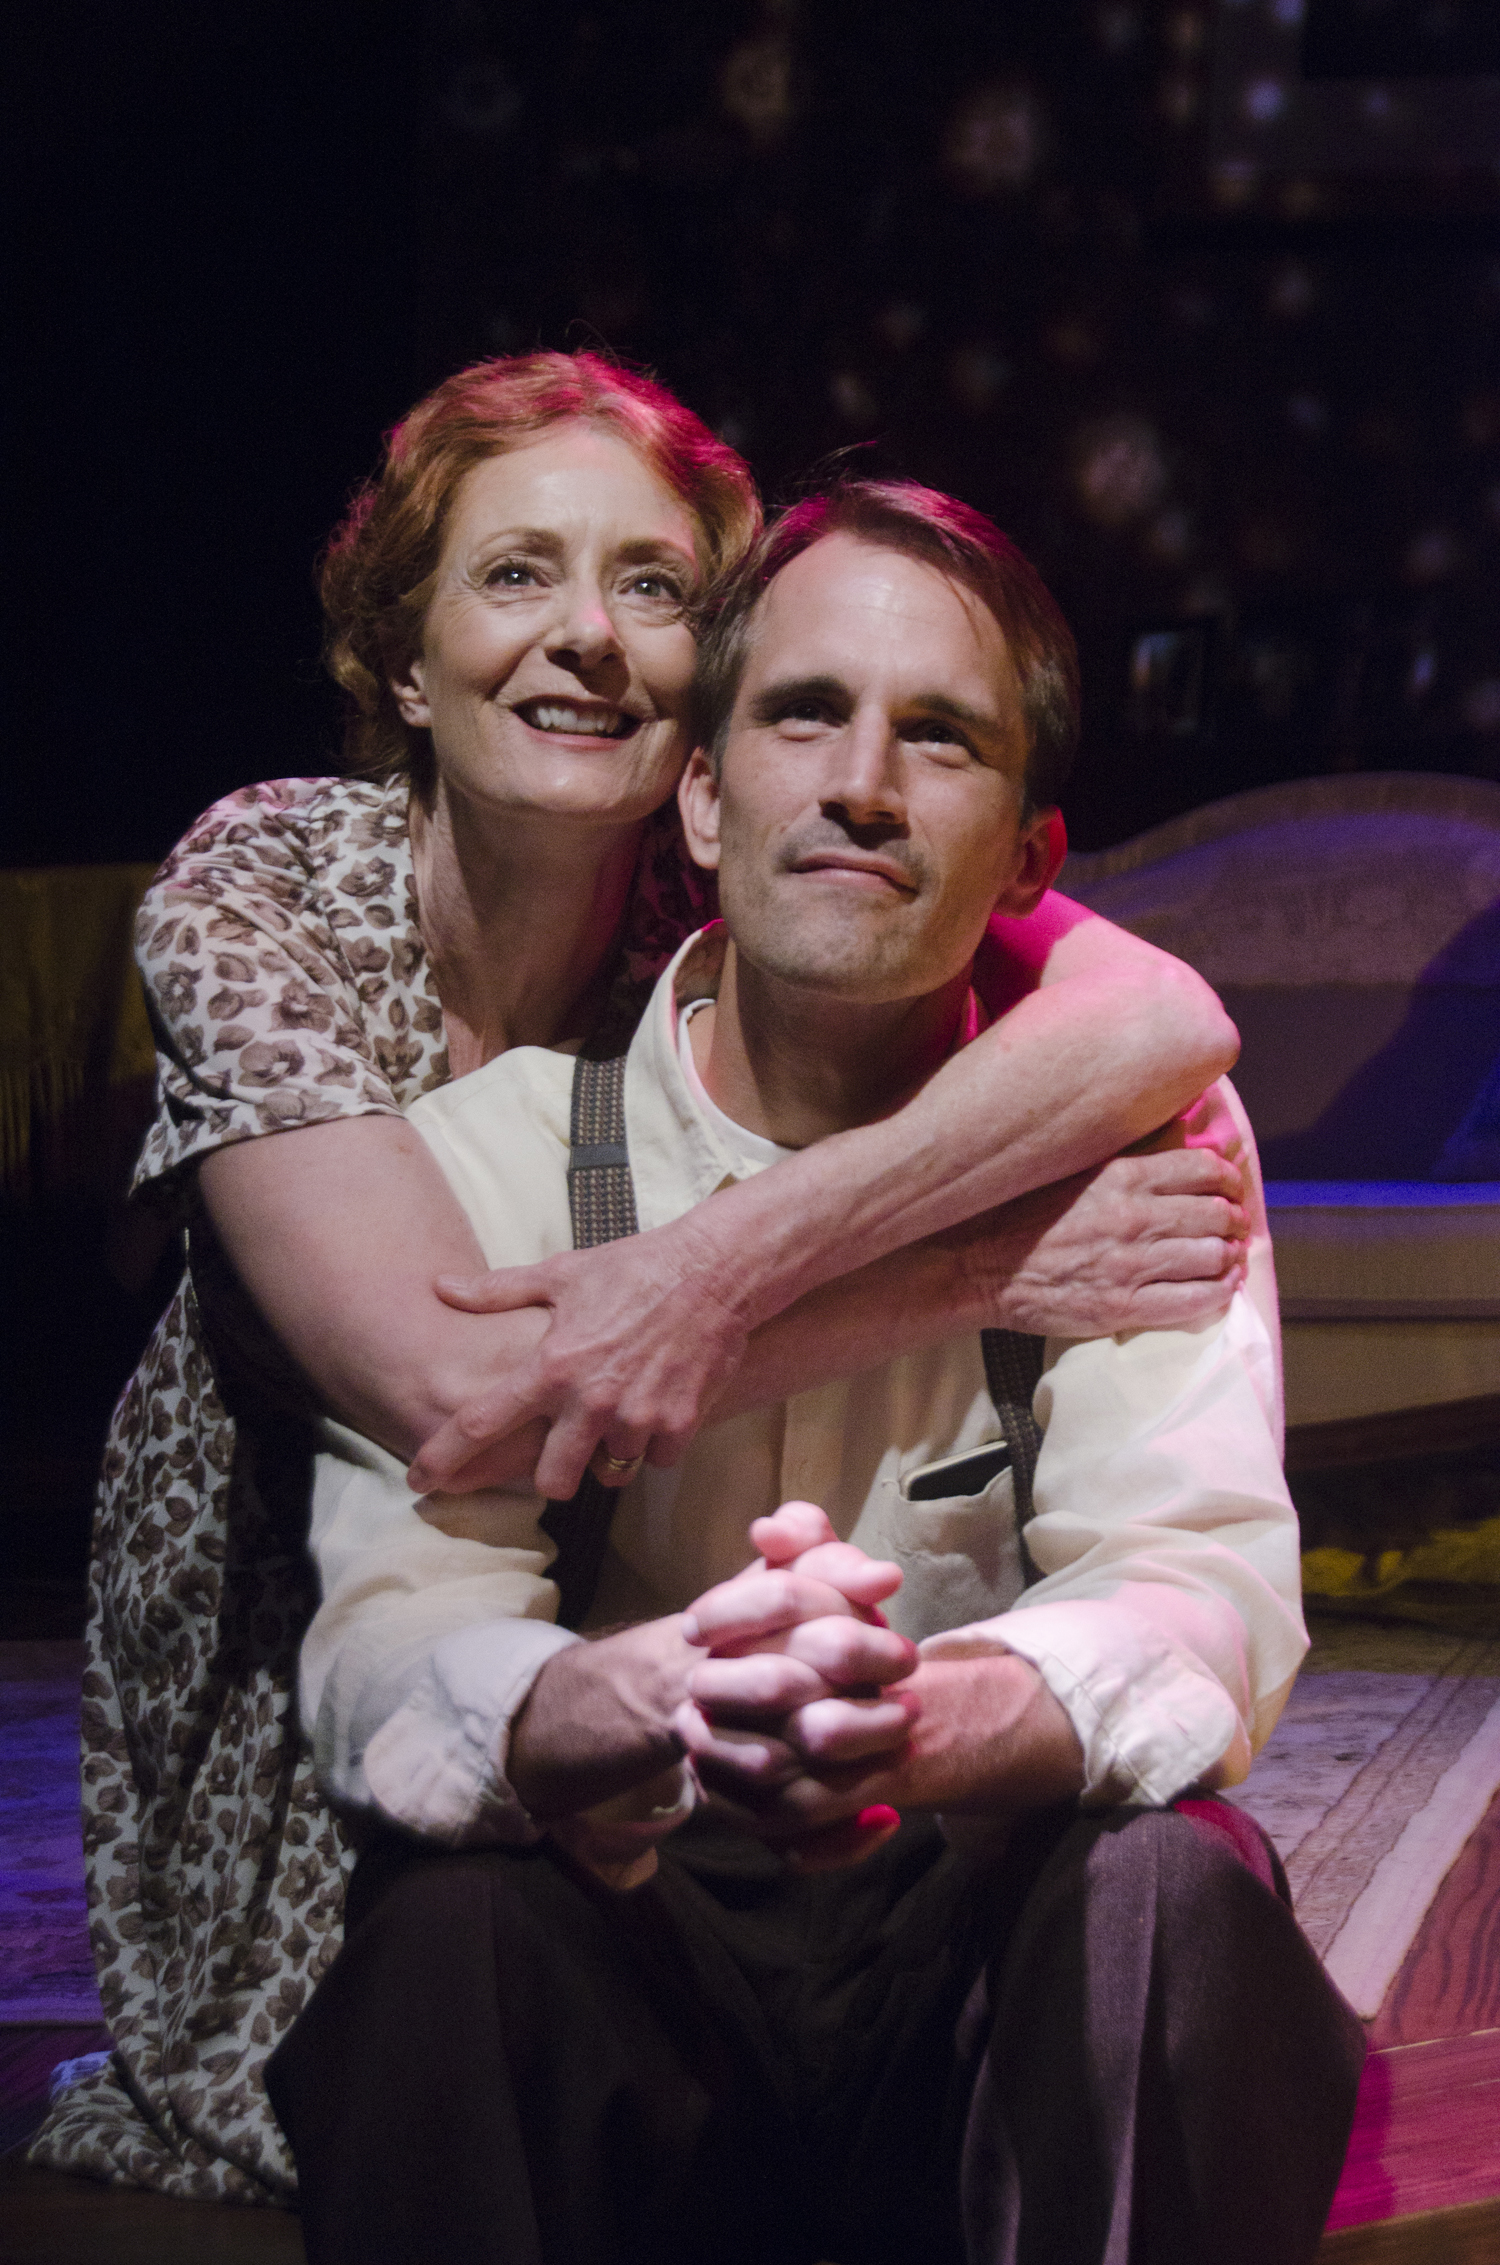 glass menagerie essay glass menagerie jpg times the final project  regional theater review the glass menagerie cygnet theatre at the glass menagerie by tennessee williams at